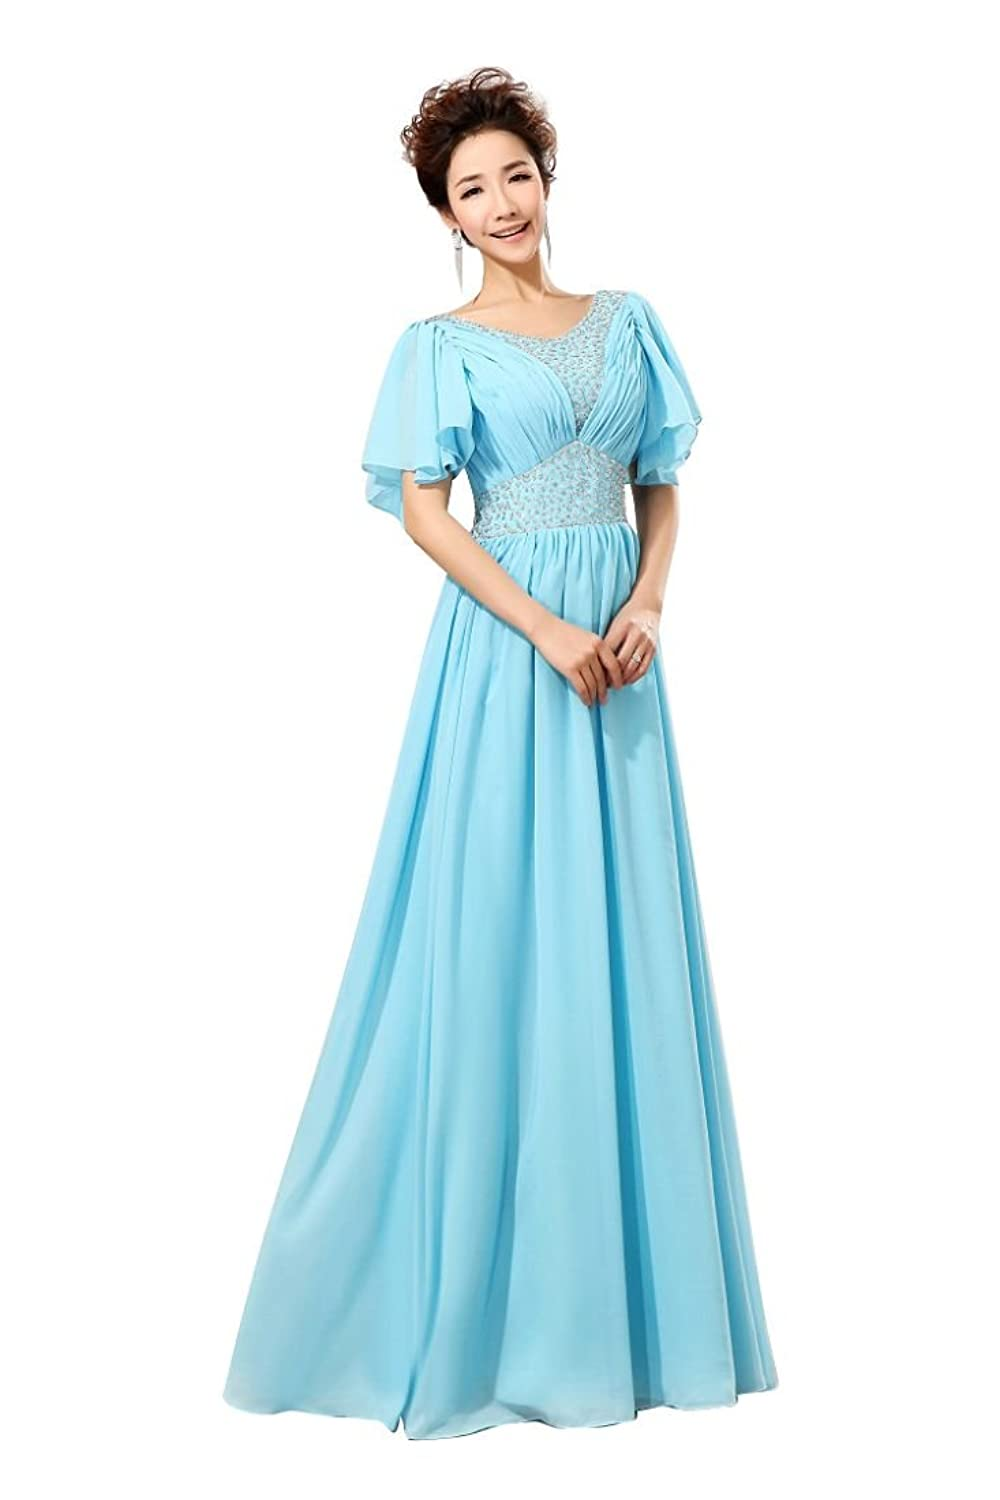 Beauty-Emily Buble Sleeve Sweat Heart Long Chiffon Party Dress Evening Gowns